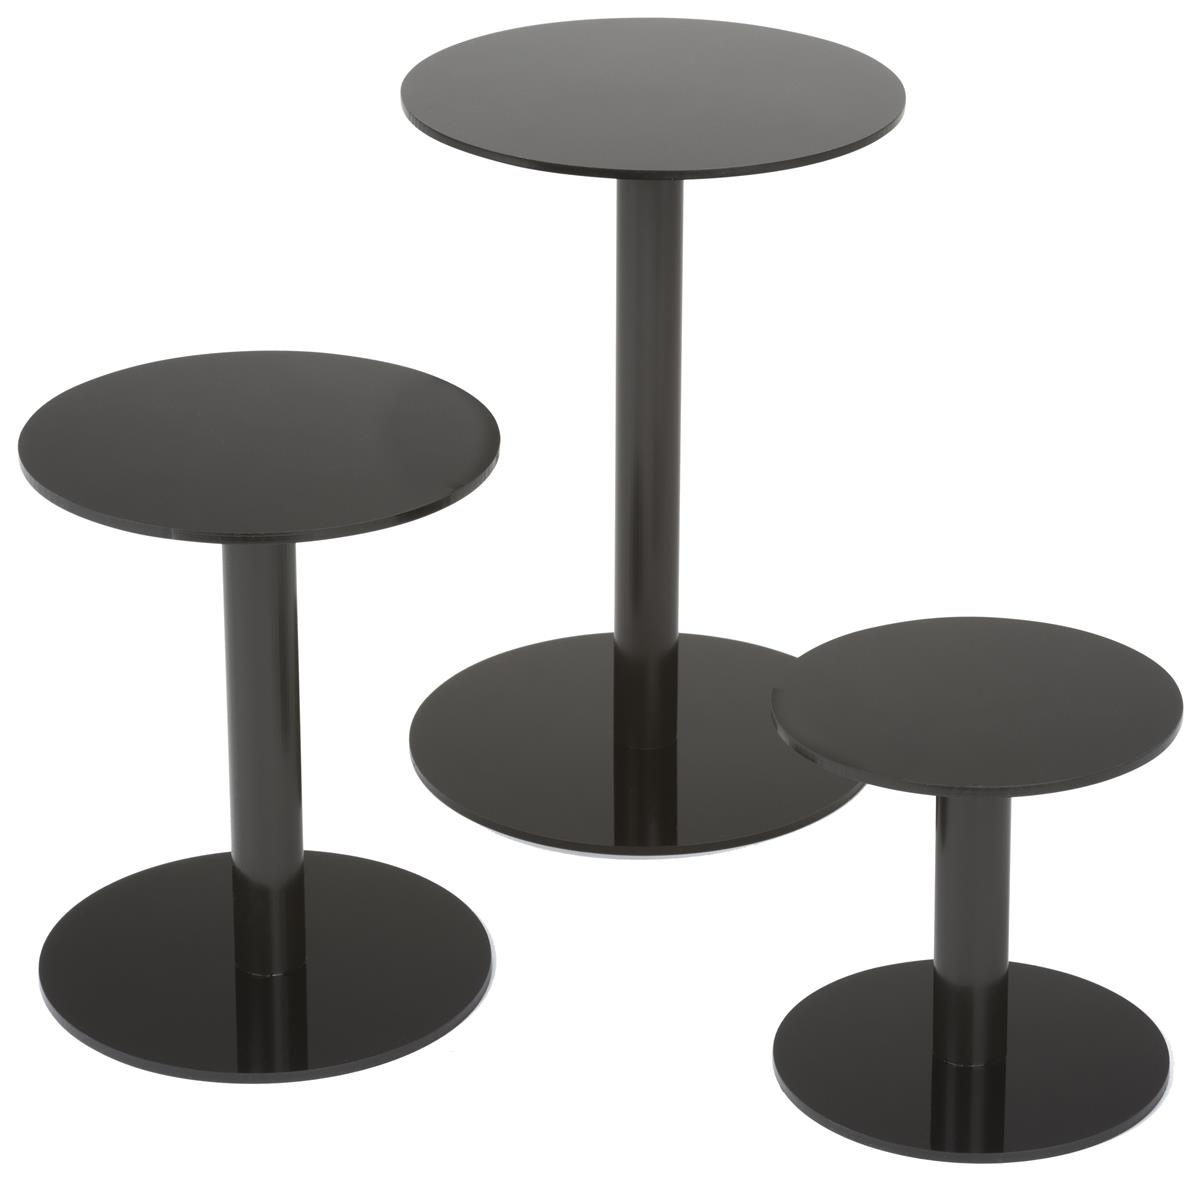 Countertop Display Pedestals